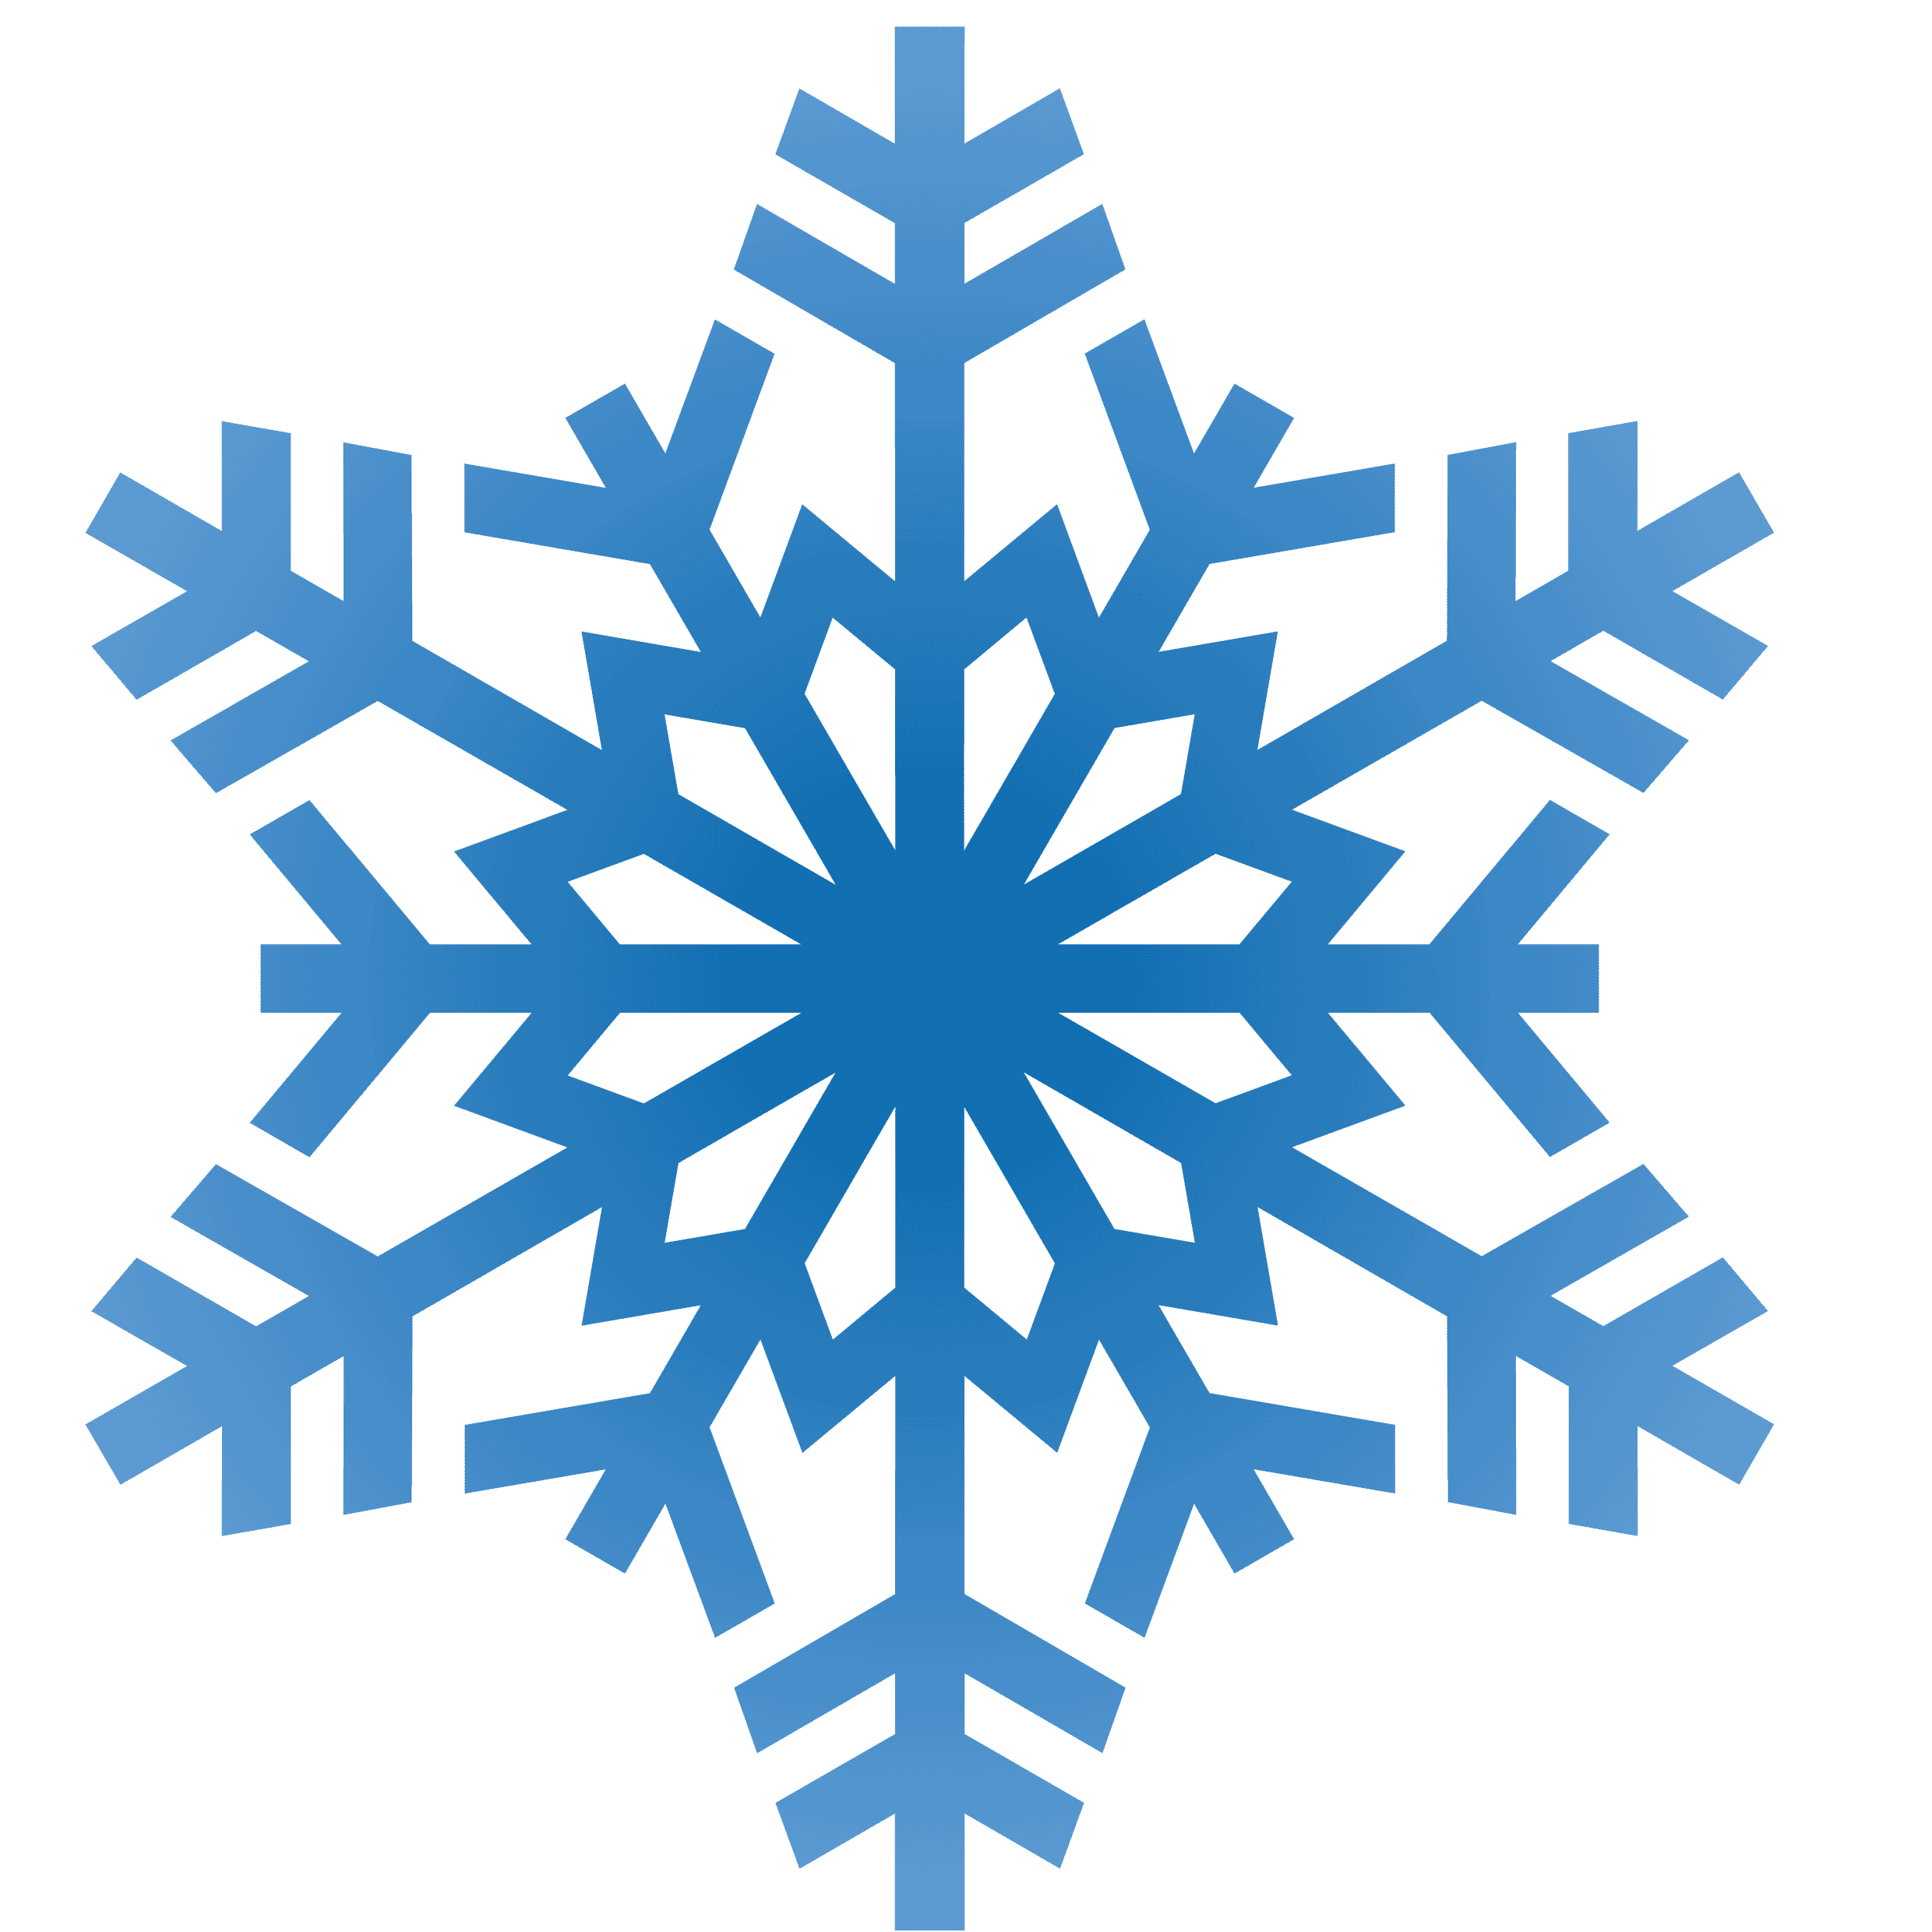 snowflakes snowflake clipart transparent background #10483